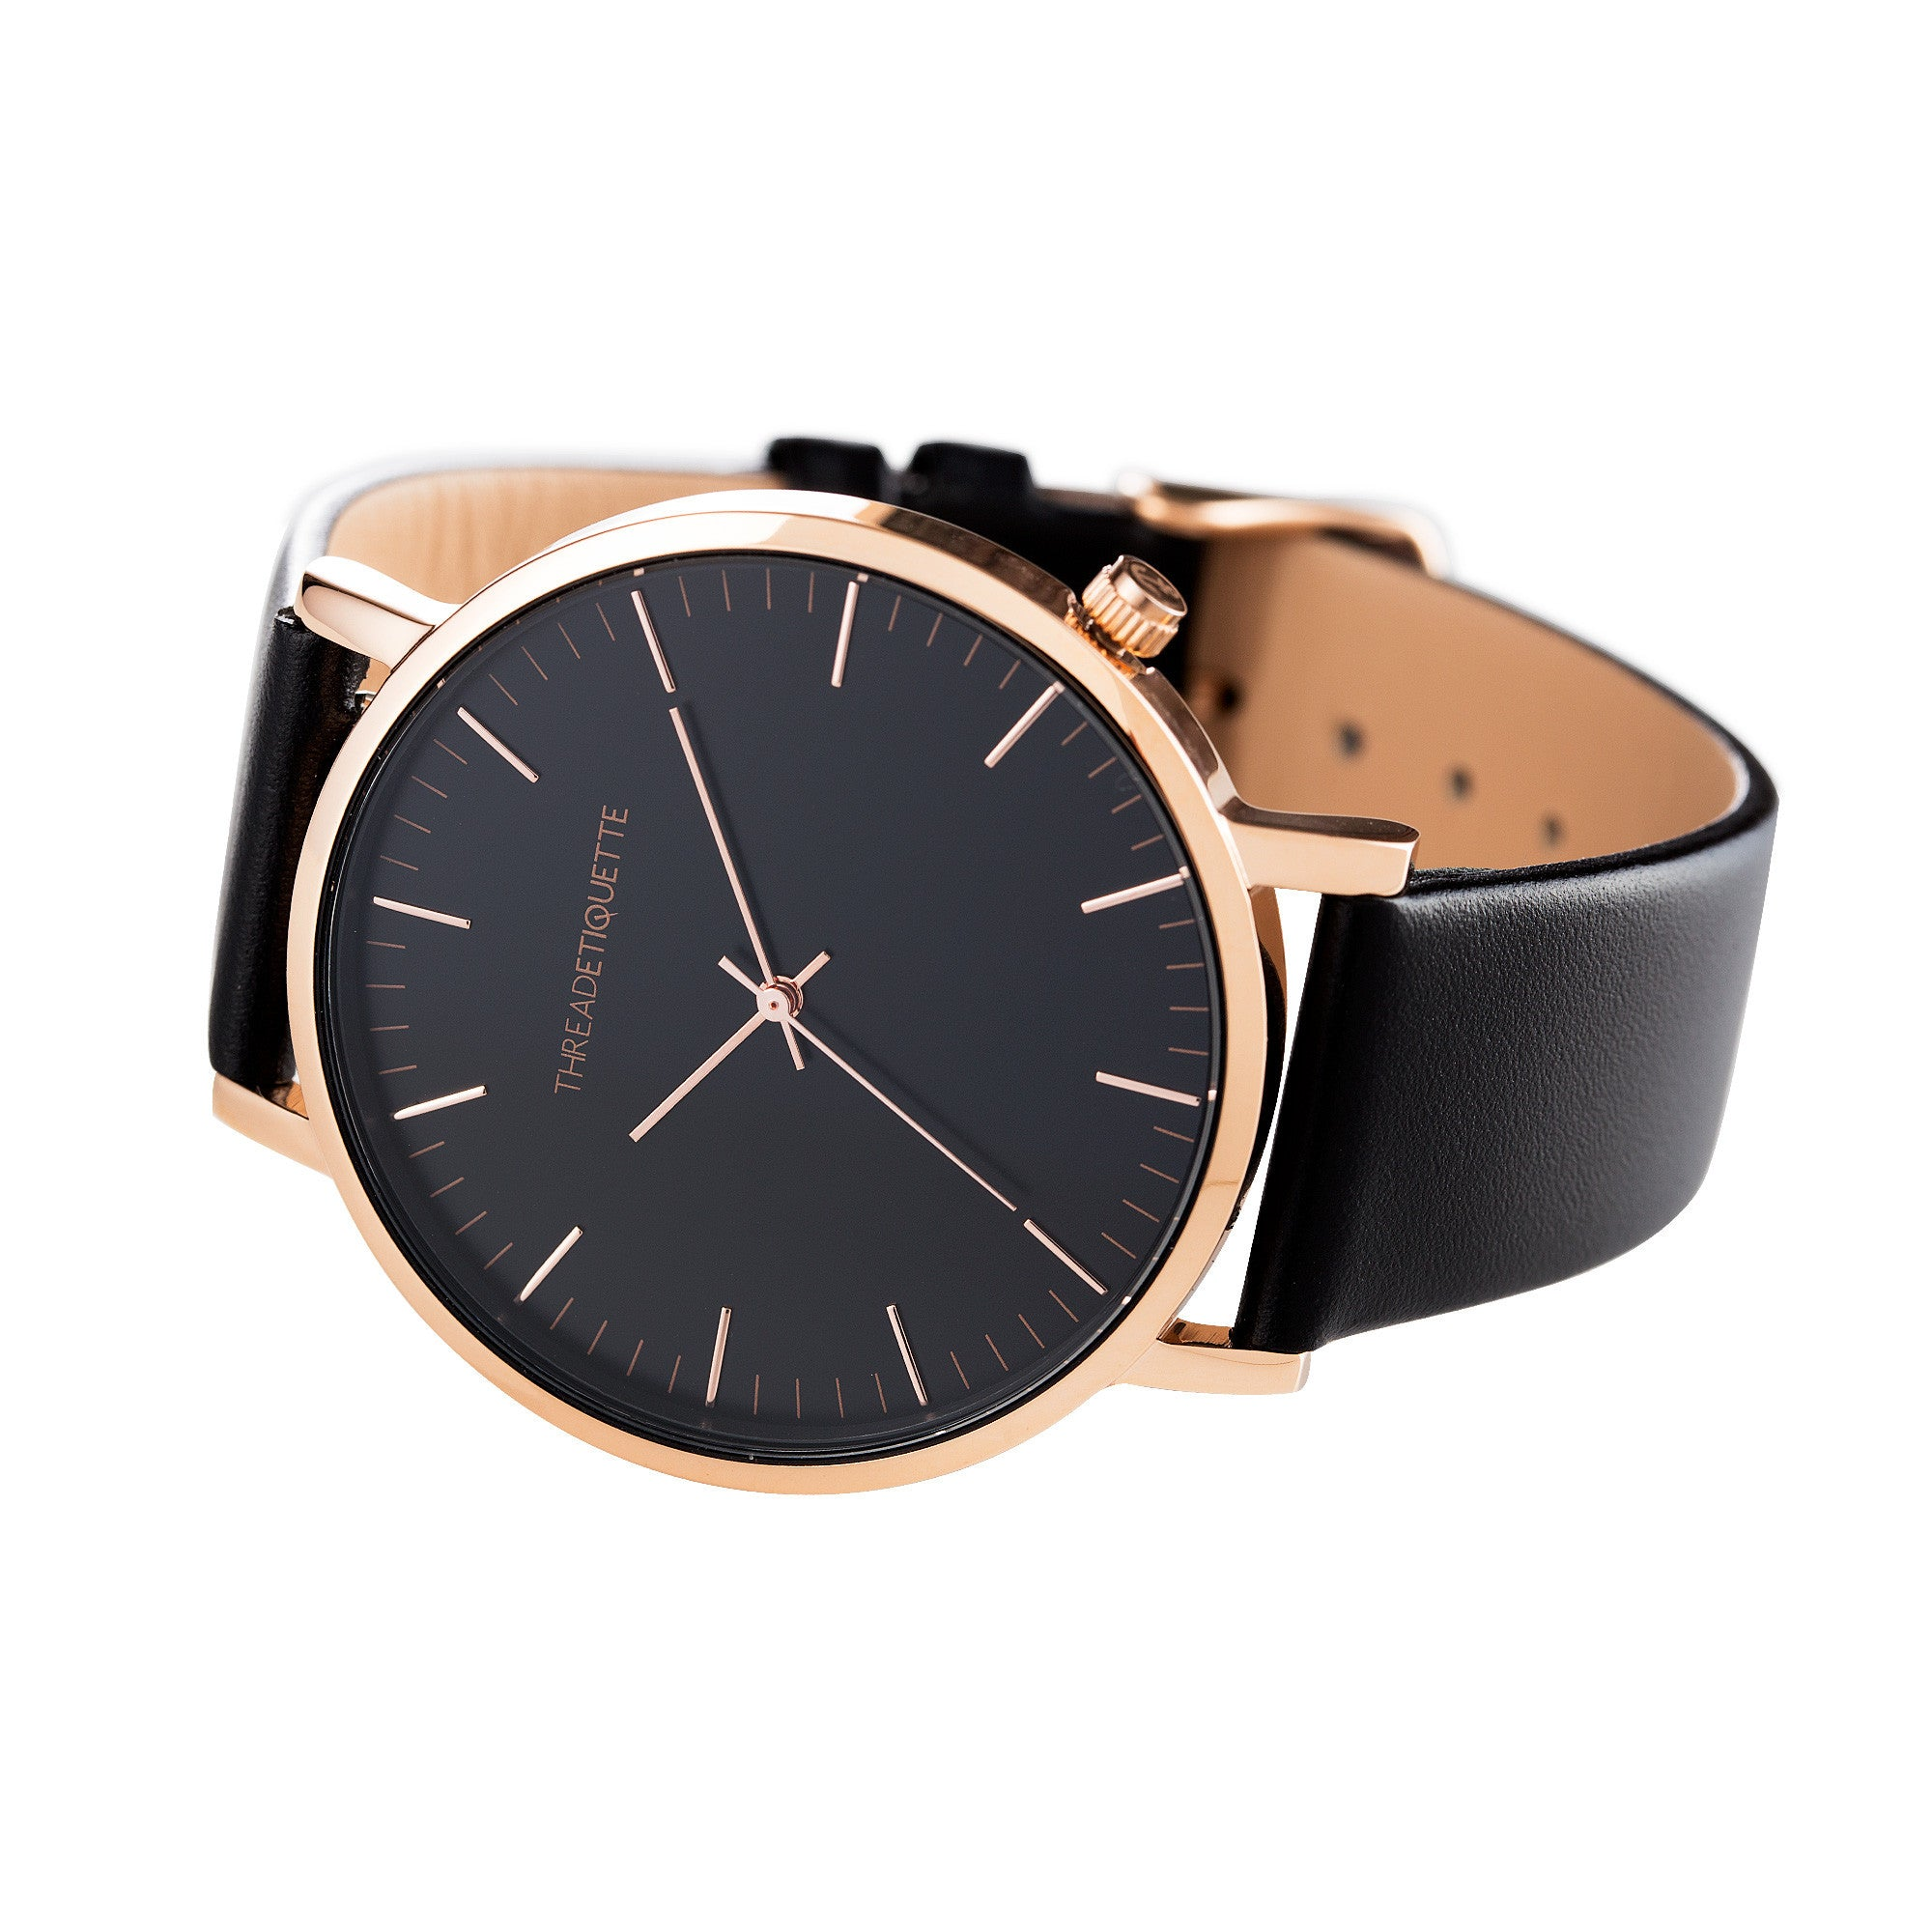 women res watches gold hi s luxury leather strap watch black case face italian eros vincero the dress band products classic clasp